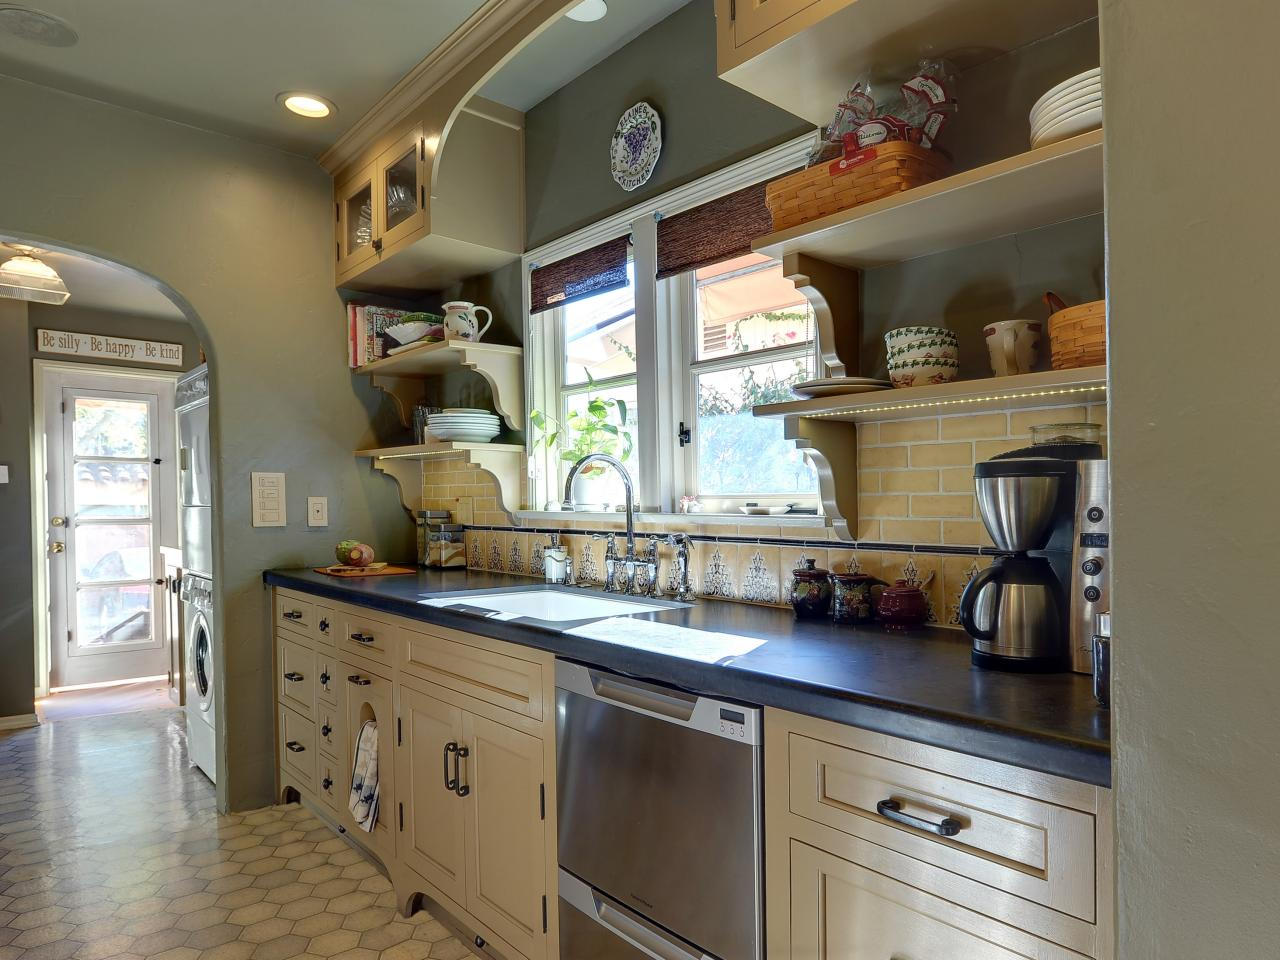 Mediterranean kitchen with open shelving this Moroccan inspired kitchen design